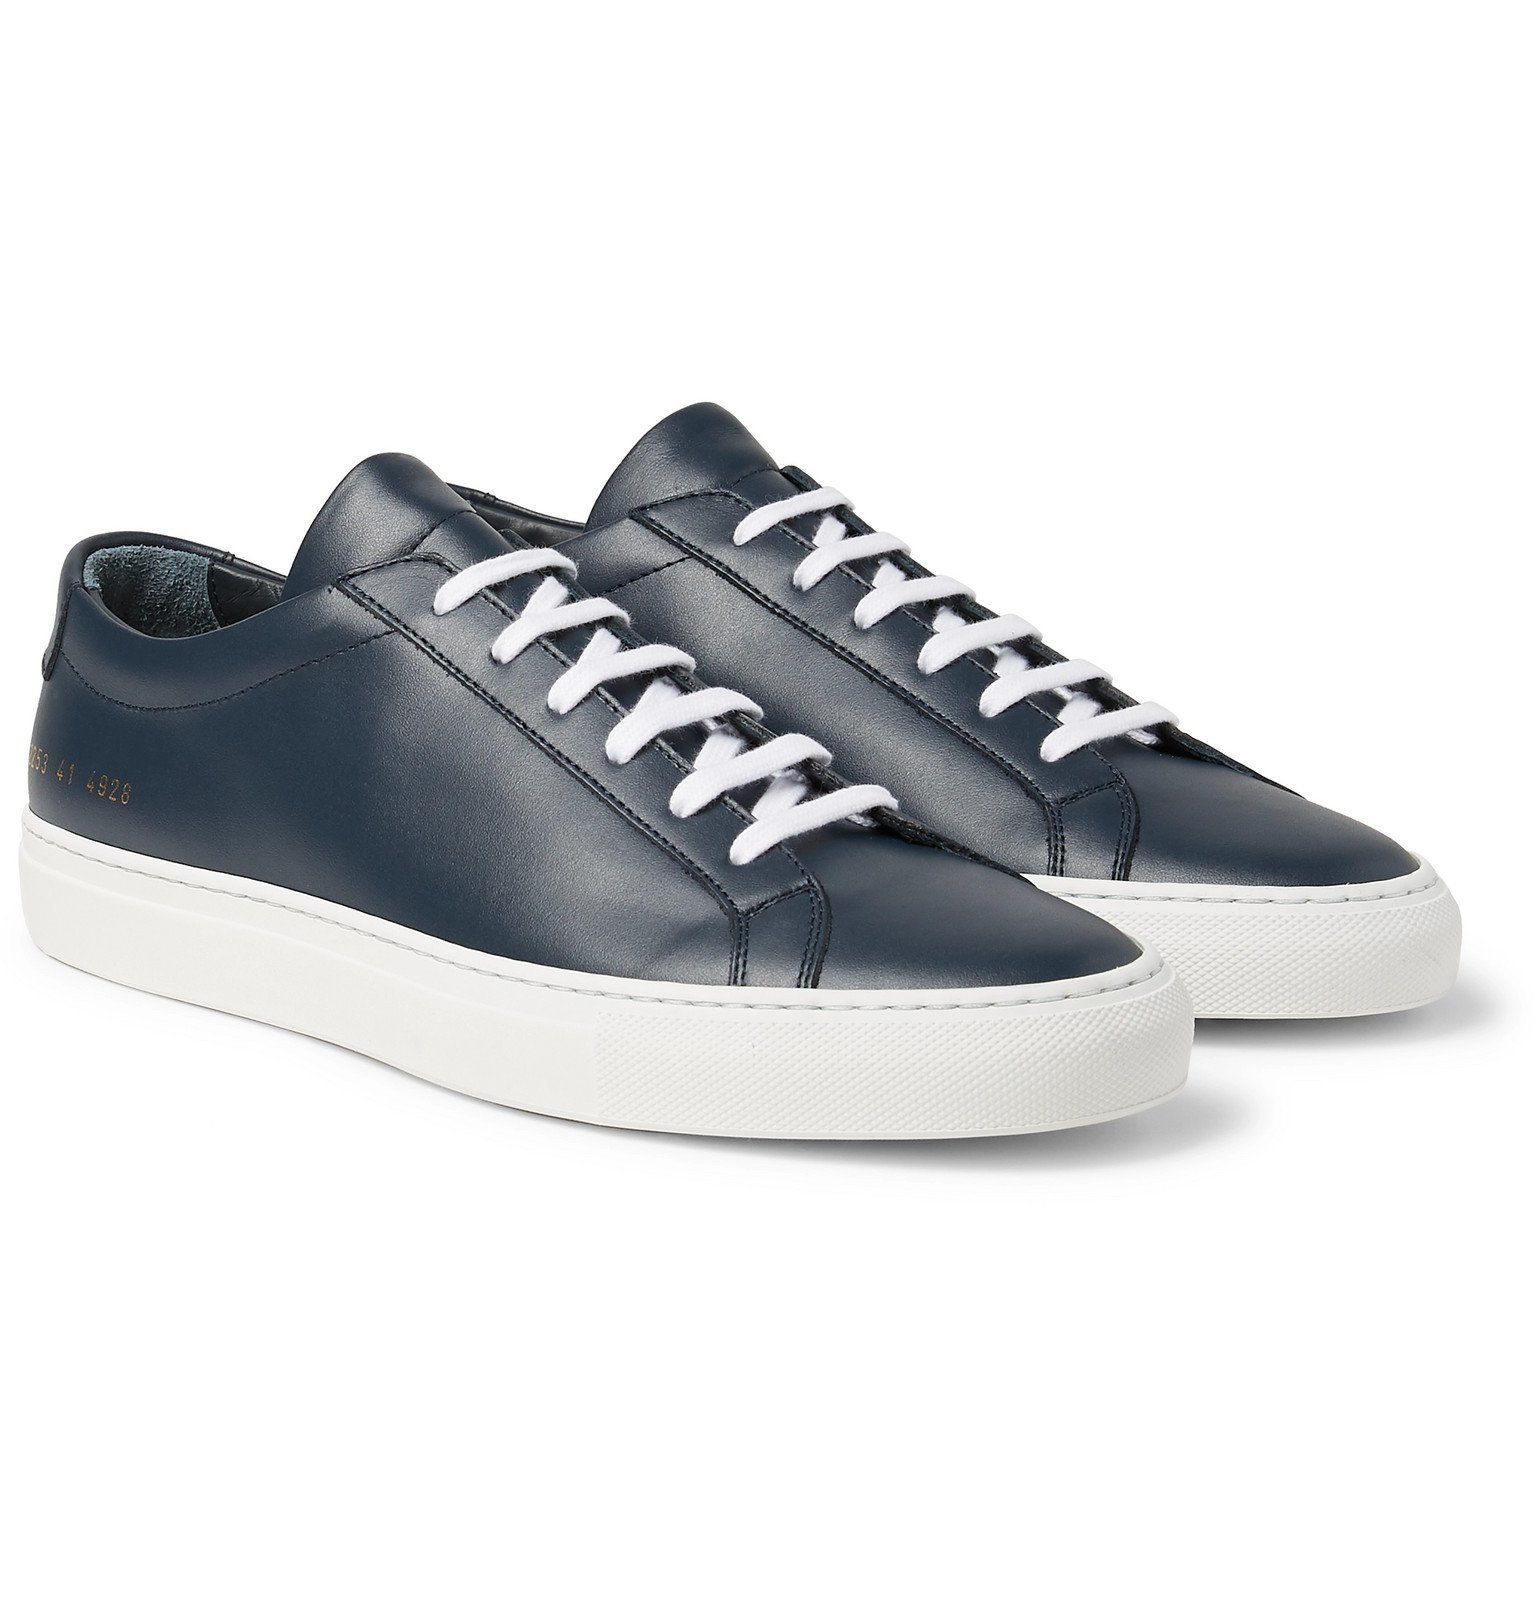 Common Projects - Original Achilles Leather Sneakers - Blue